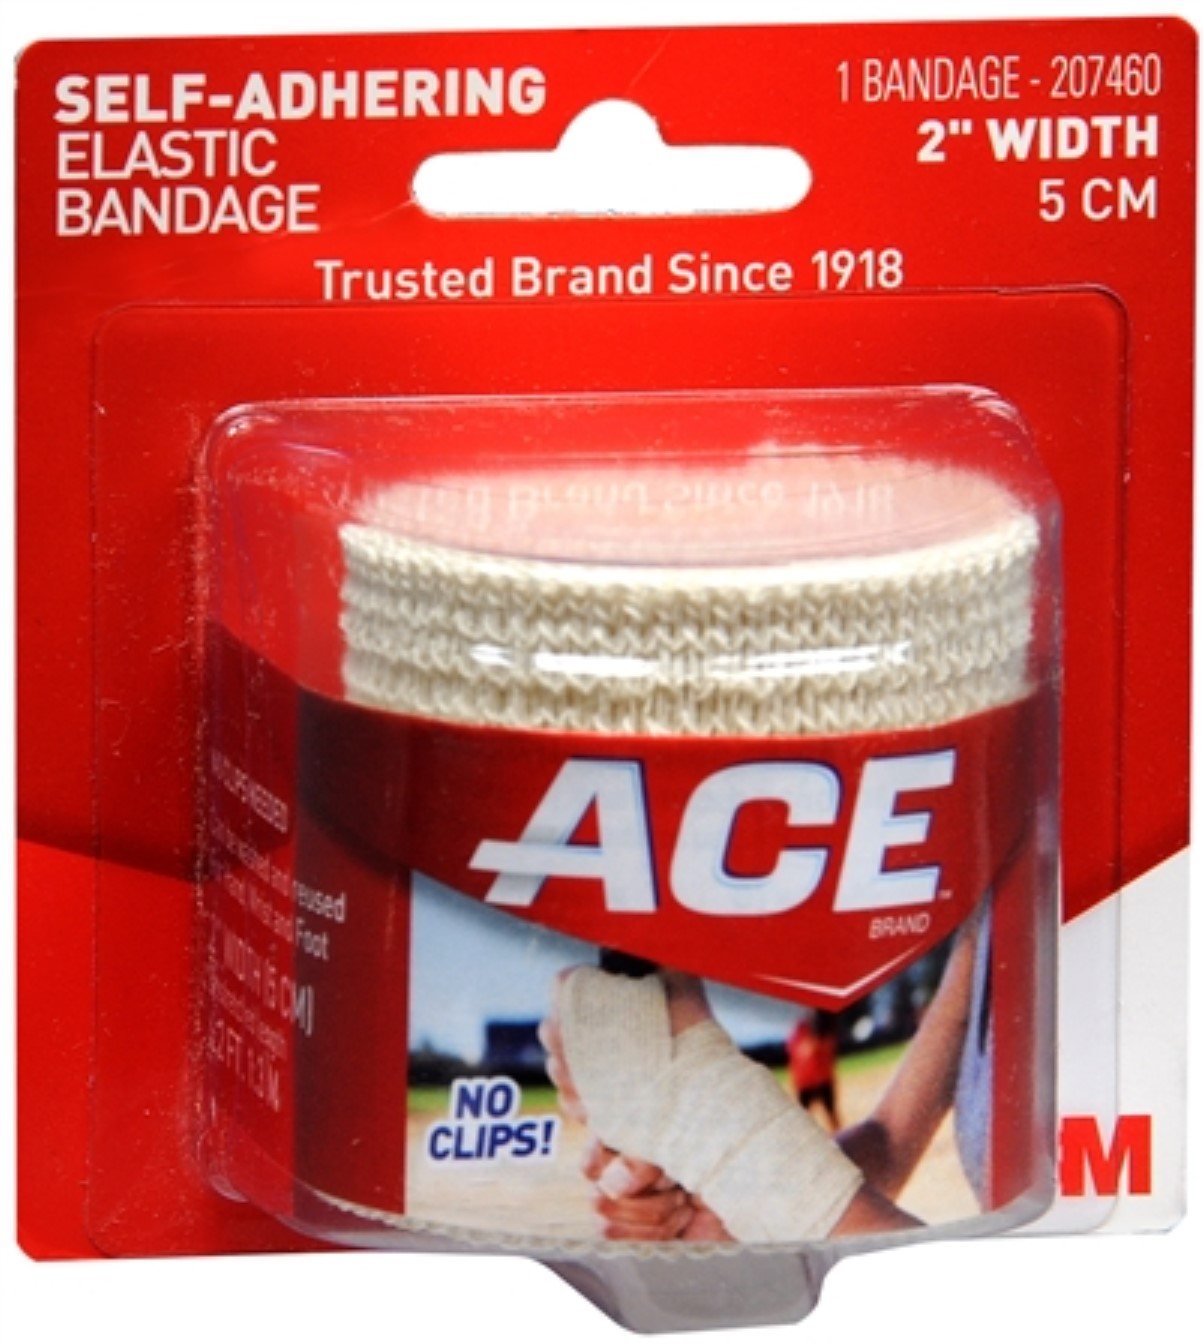 ACE Self-Adhering Bandage 2 Inches 1 Each